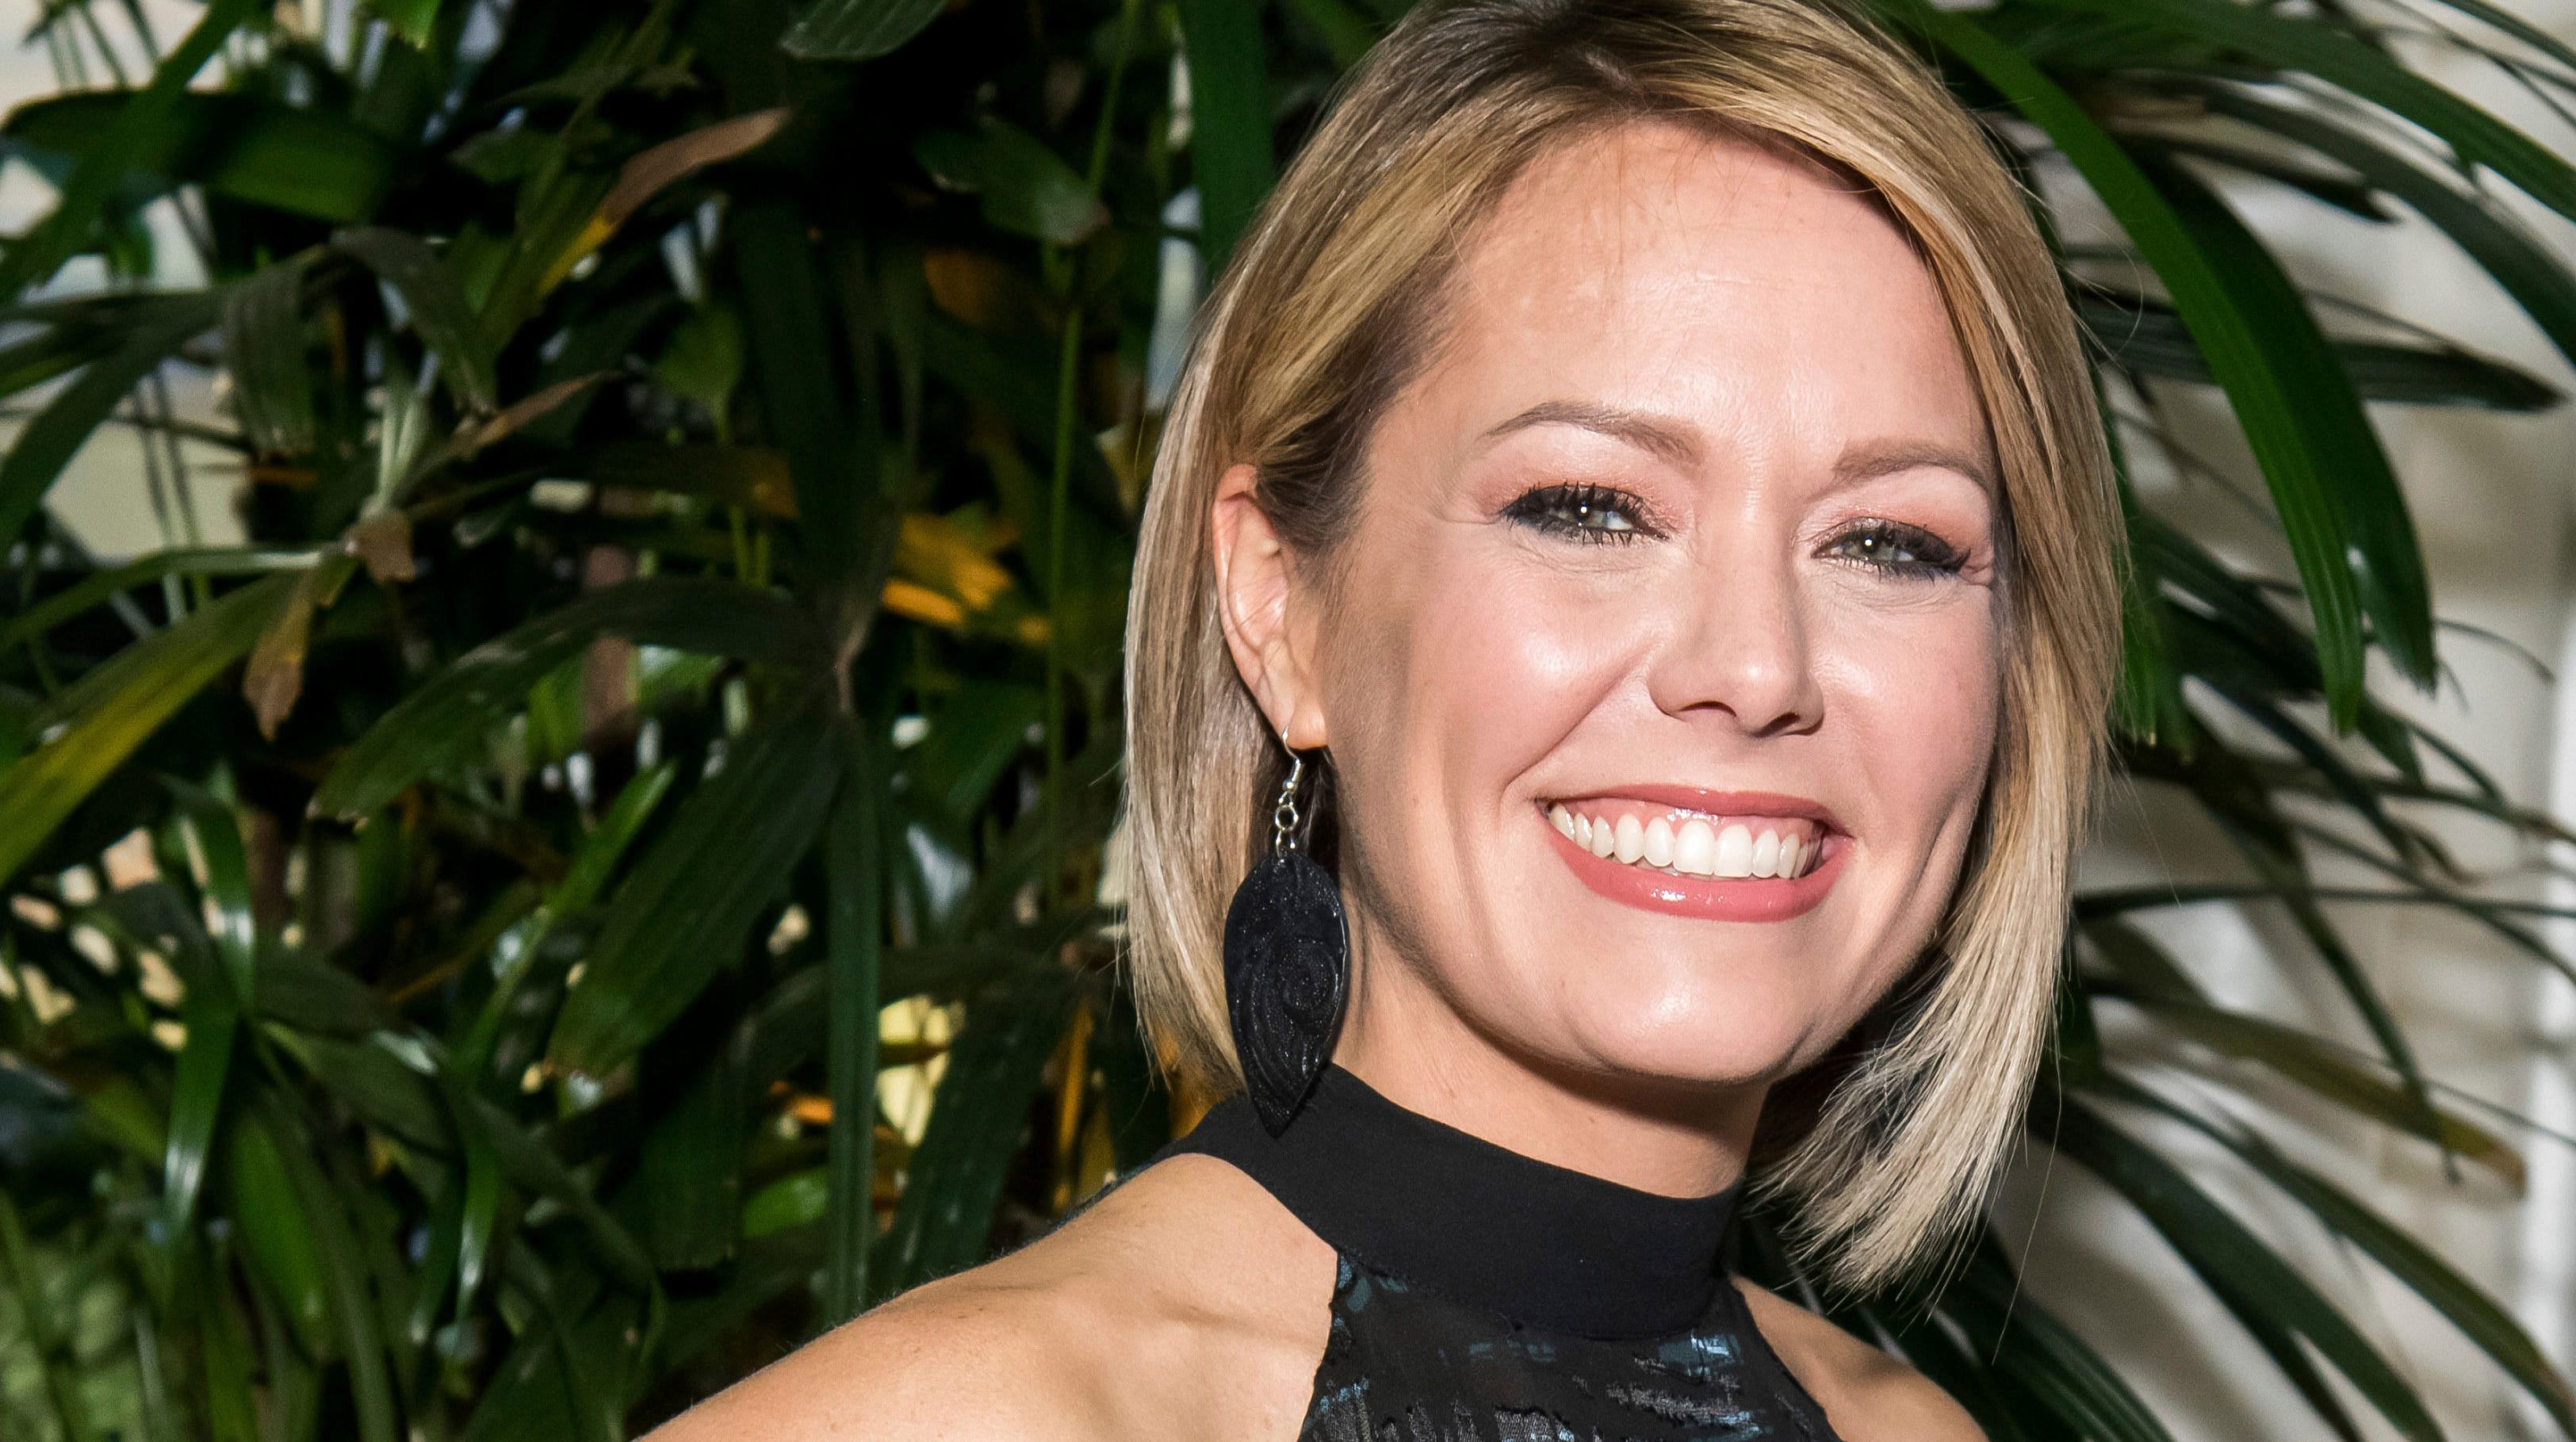 'Today' show's Dylan Dreyer opens up about miscarriage and secondary infertility struggle